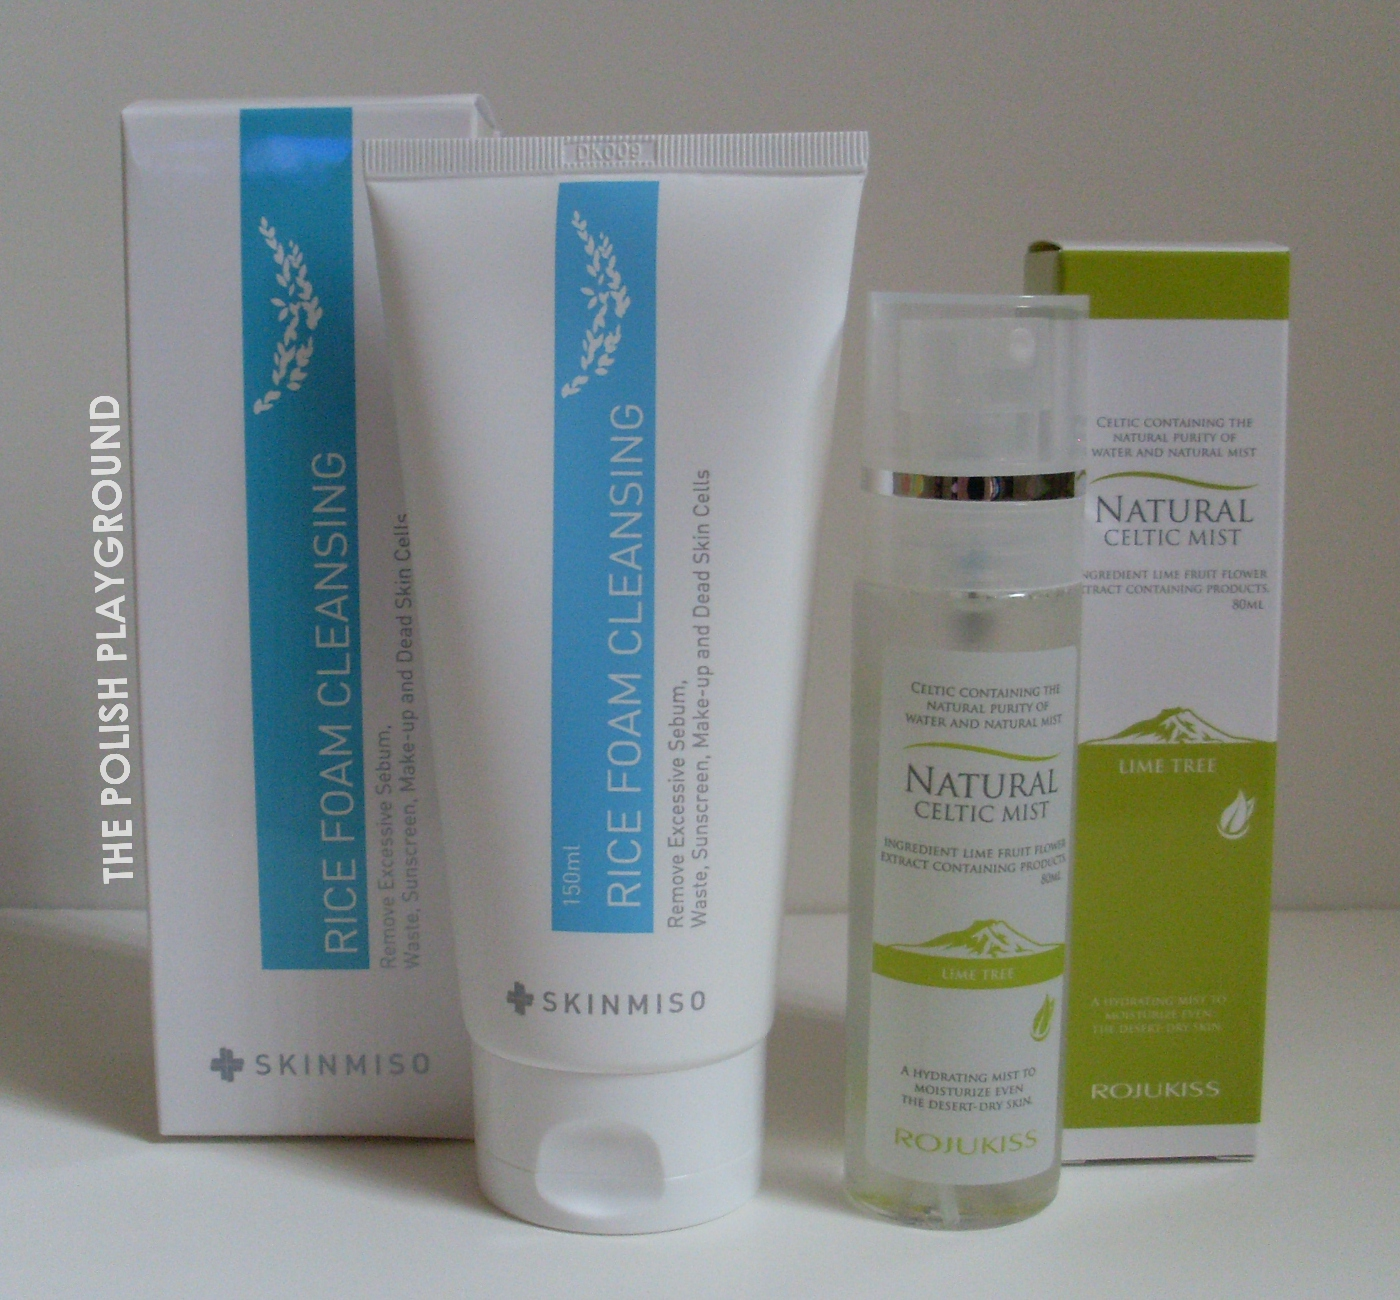 Wishtrend Haul - Skinmiso Rice Foam Cleansing, Rojukiss Natural Celtic Mist